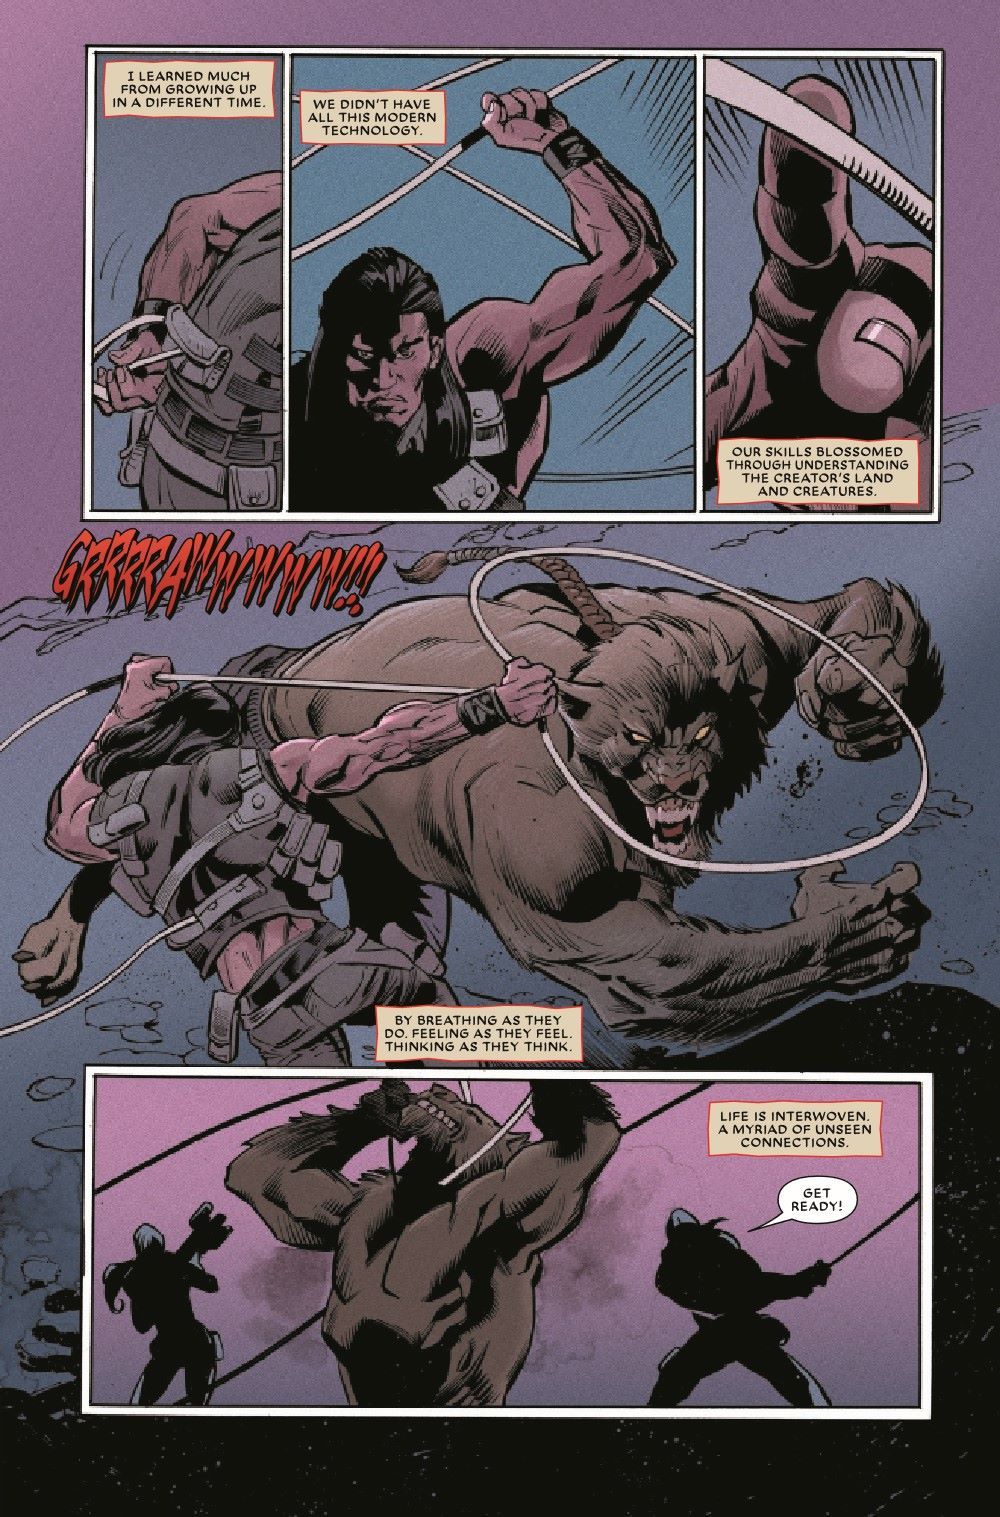 WBN2020003_Preview-4 ComicList Previews: WEREWOLF BY NIGHT #3 (OF 4)